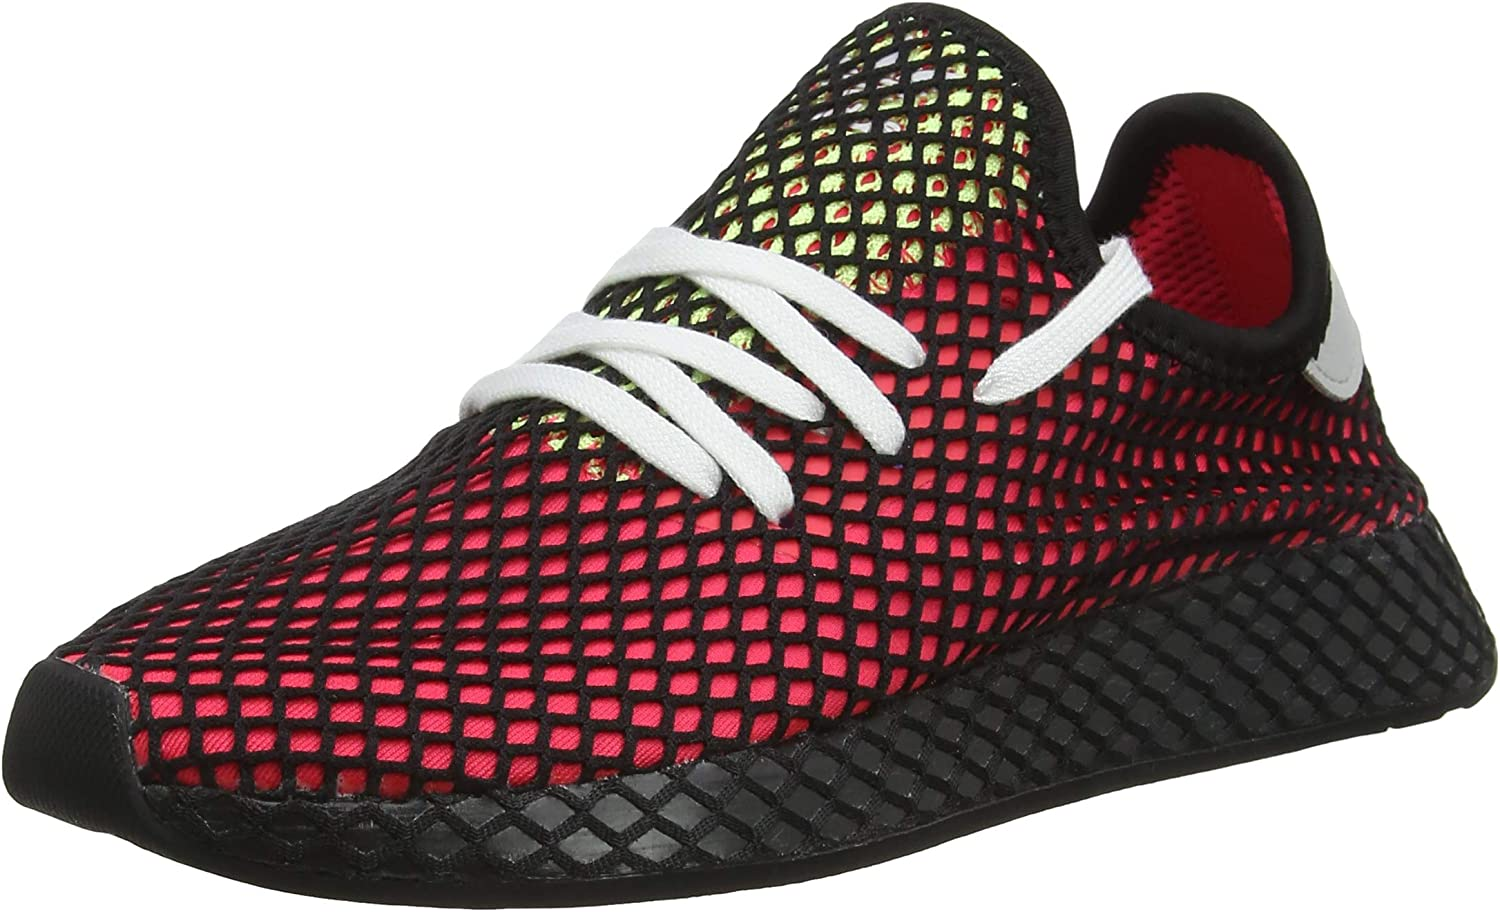 Adidas Men's's Deerupt Runner Gymnastics shoes